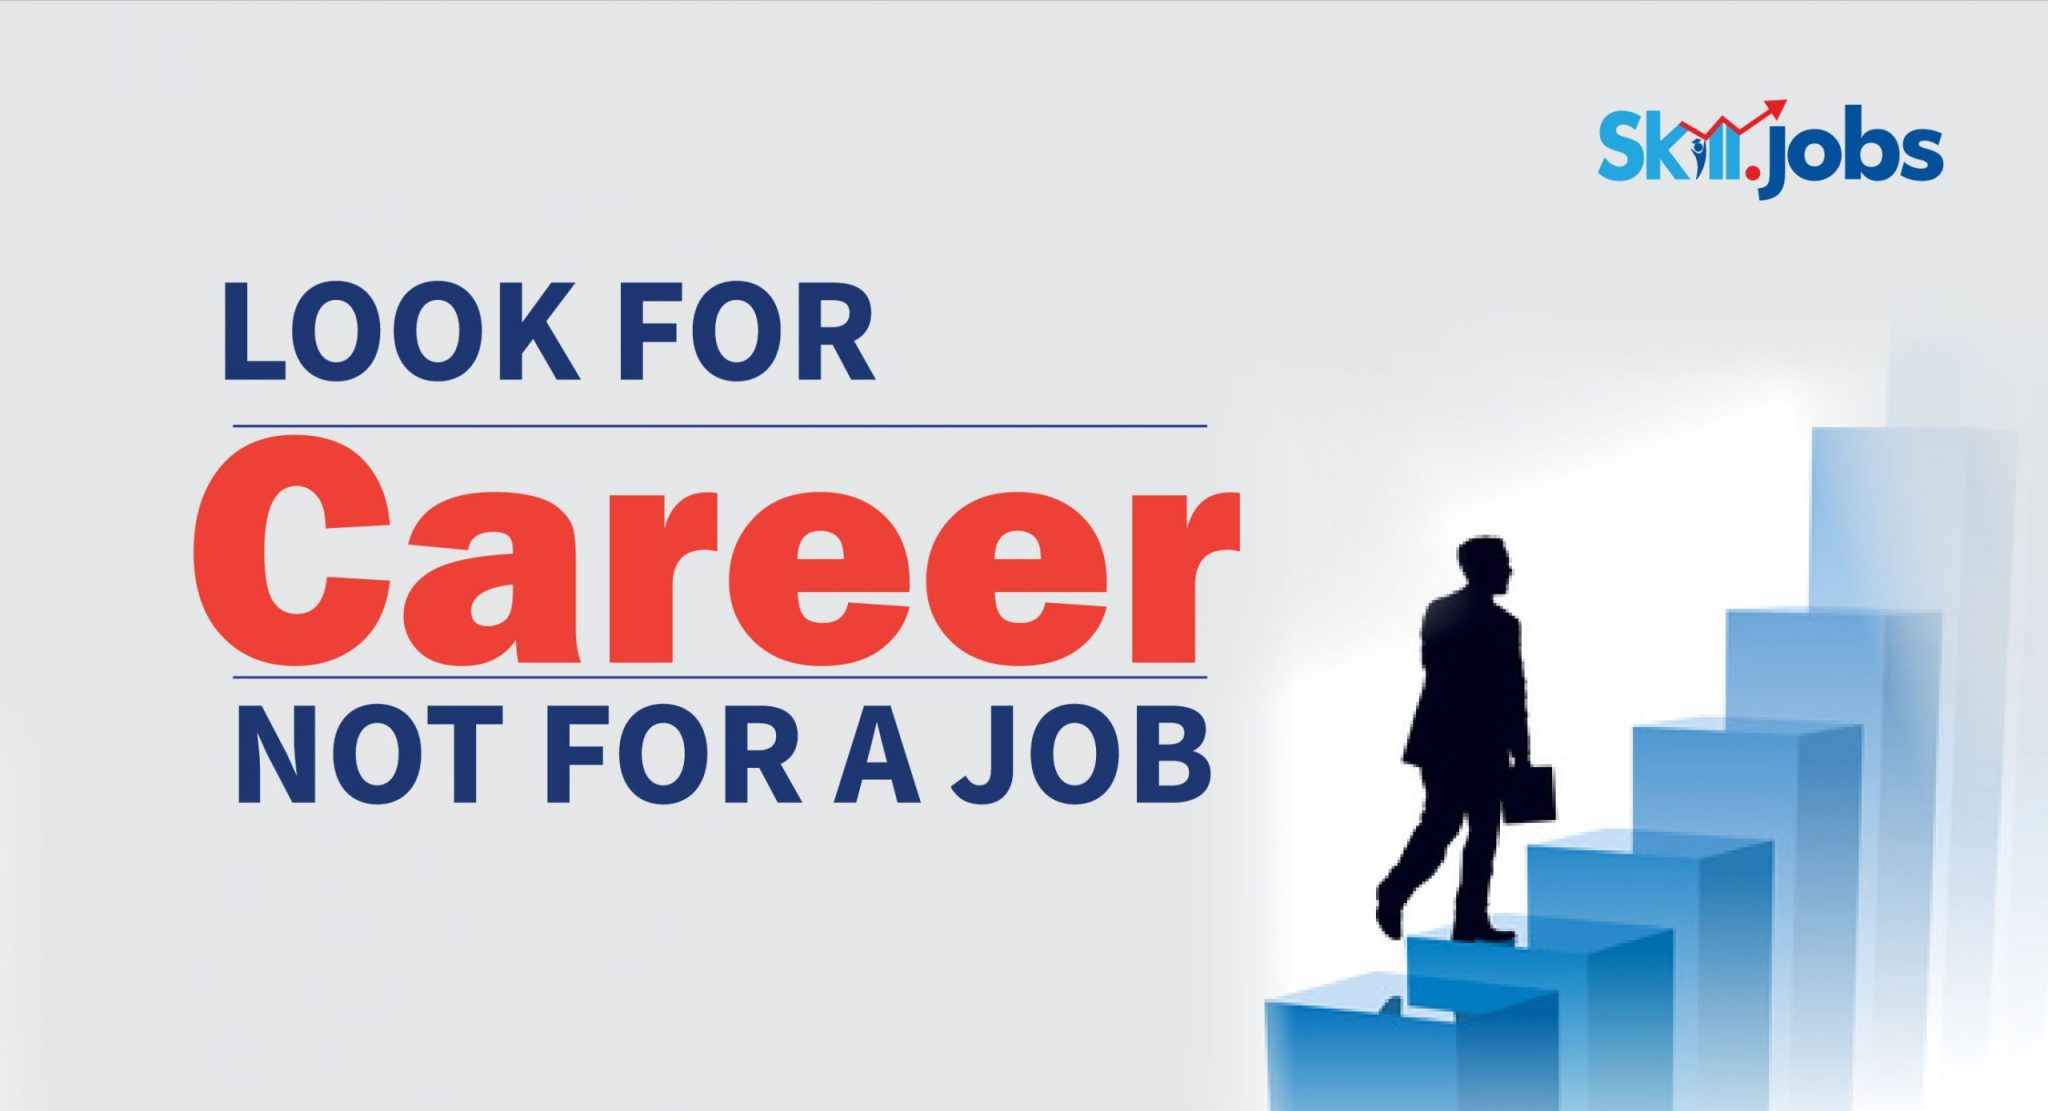 LOOK FOR CAREER NOT FOR A JOB